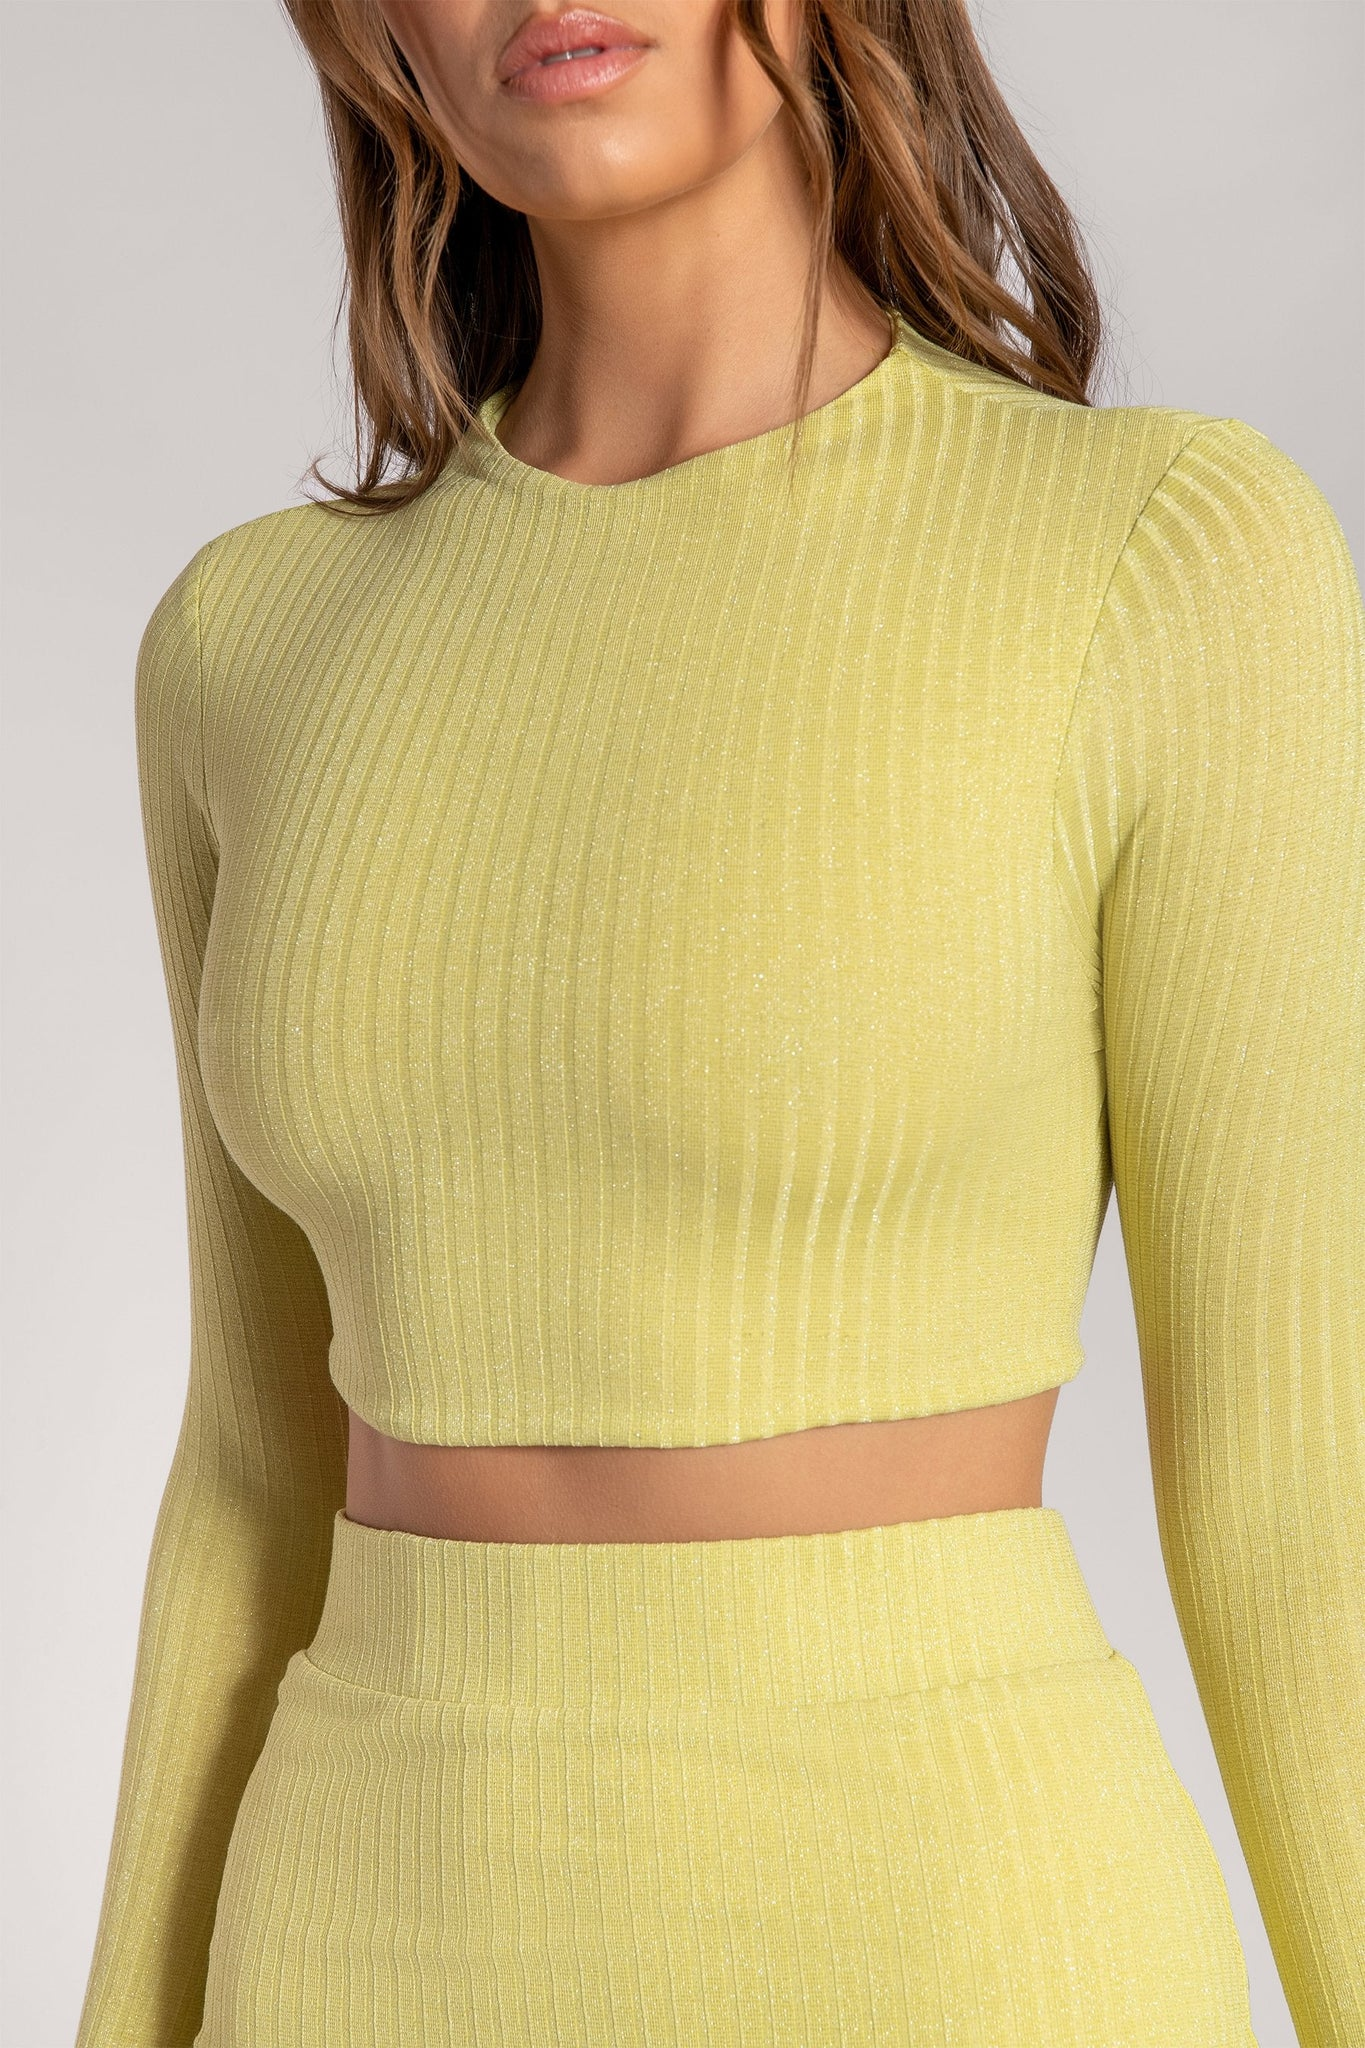 Iliana Shimmer Rib Long Sleeve Crop Top - Lemon - MESHKI